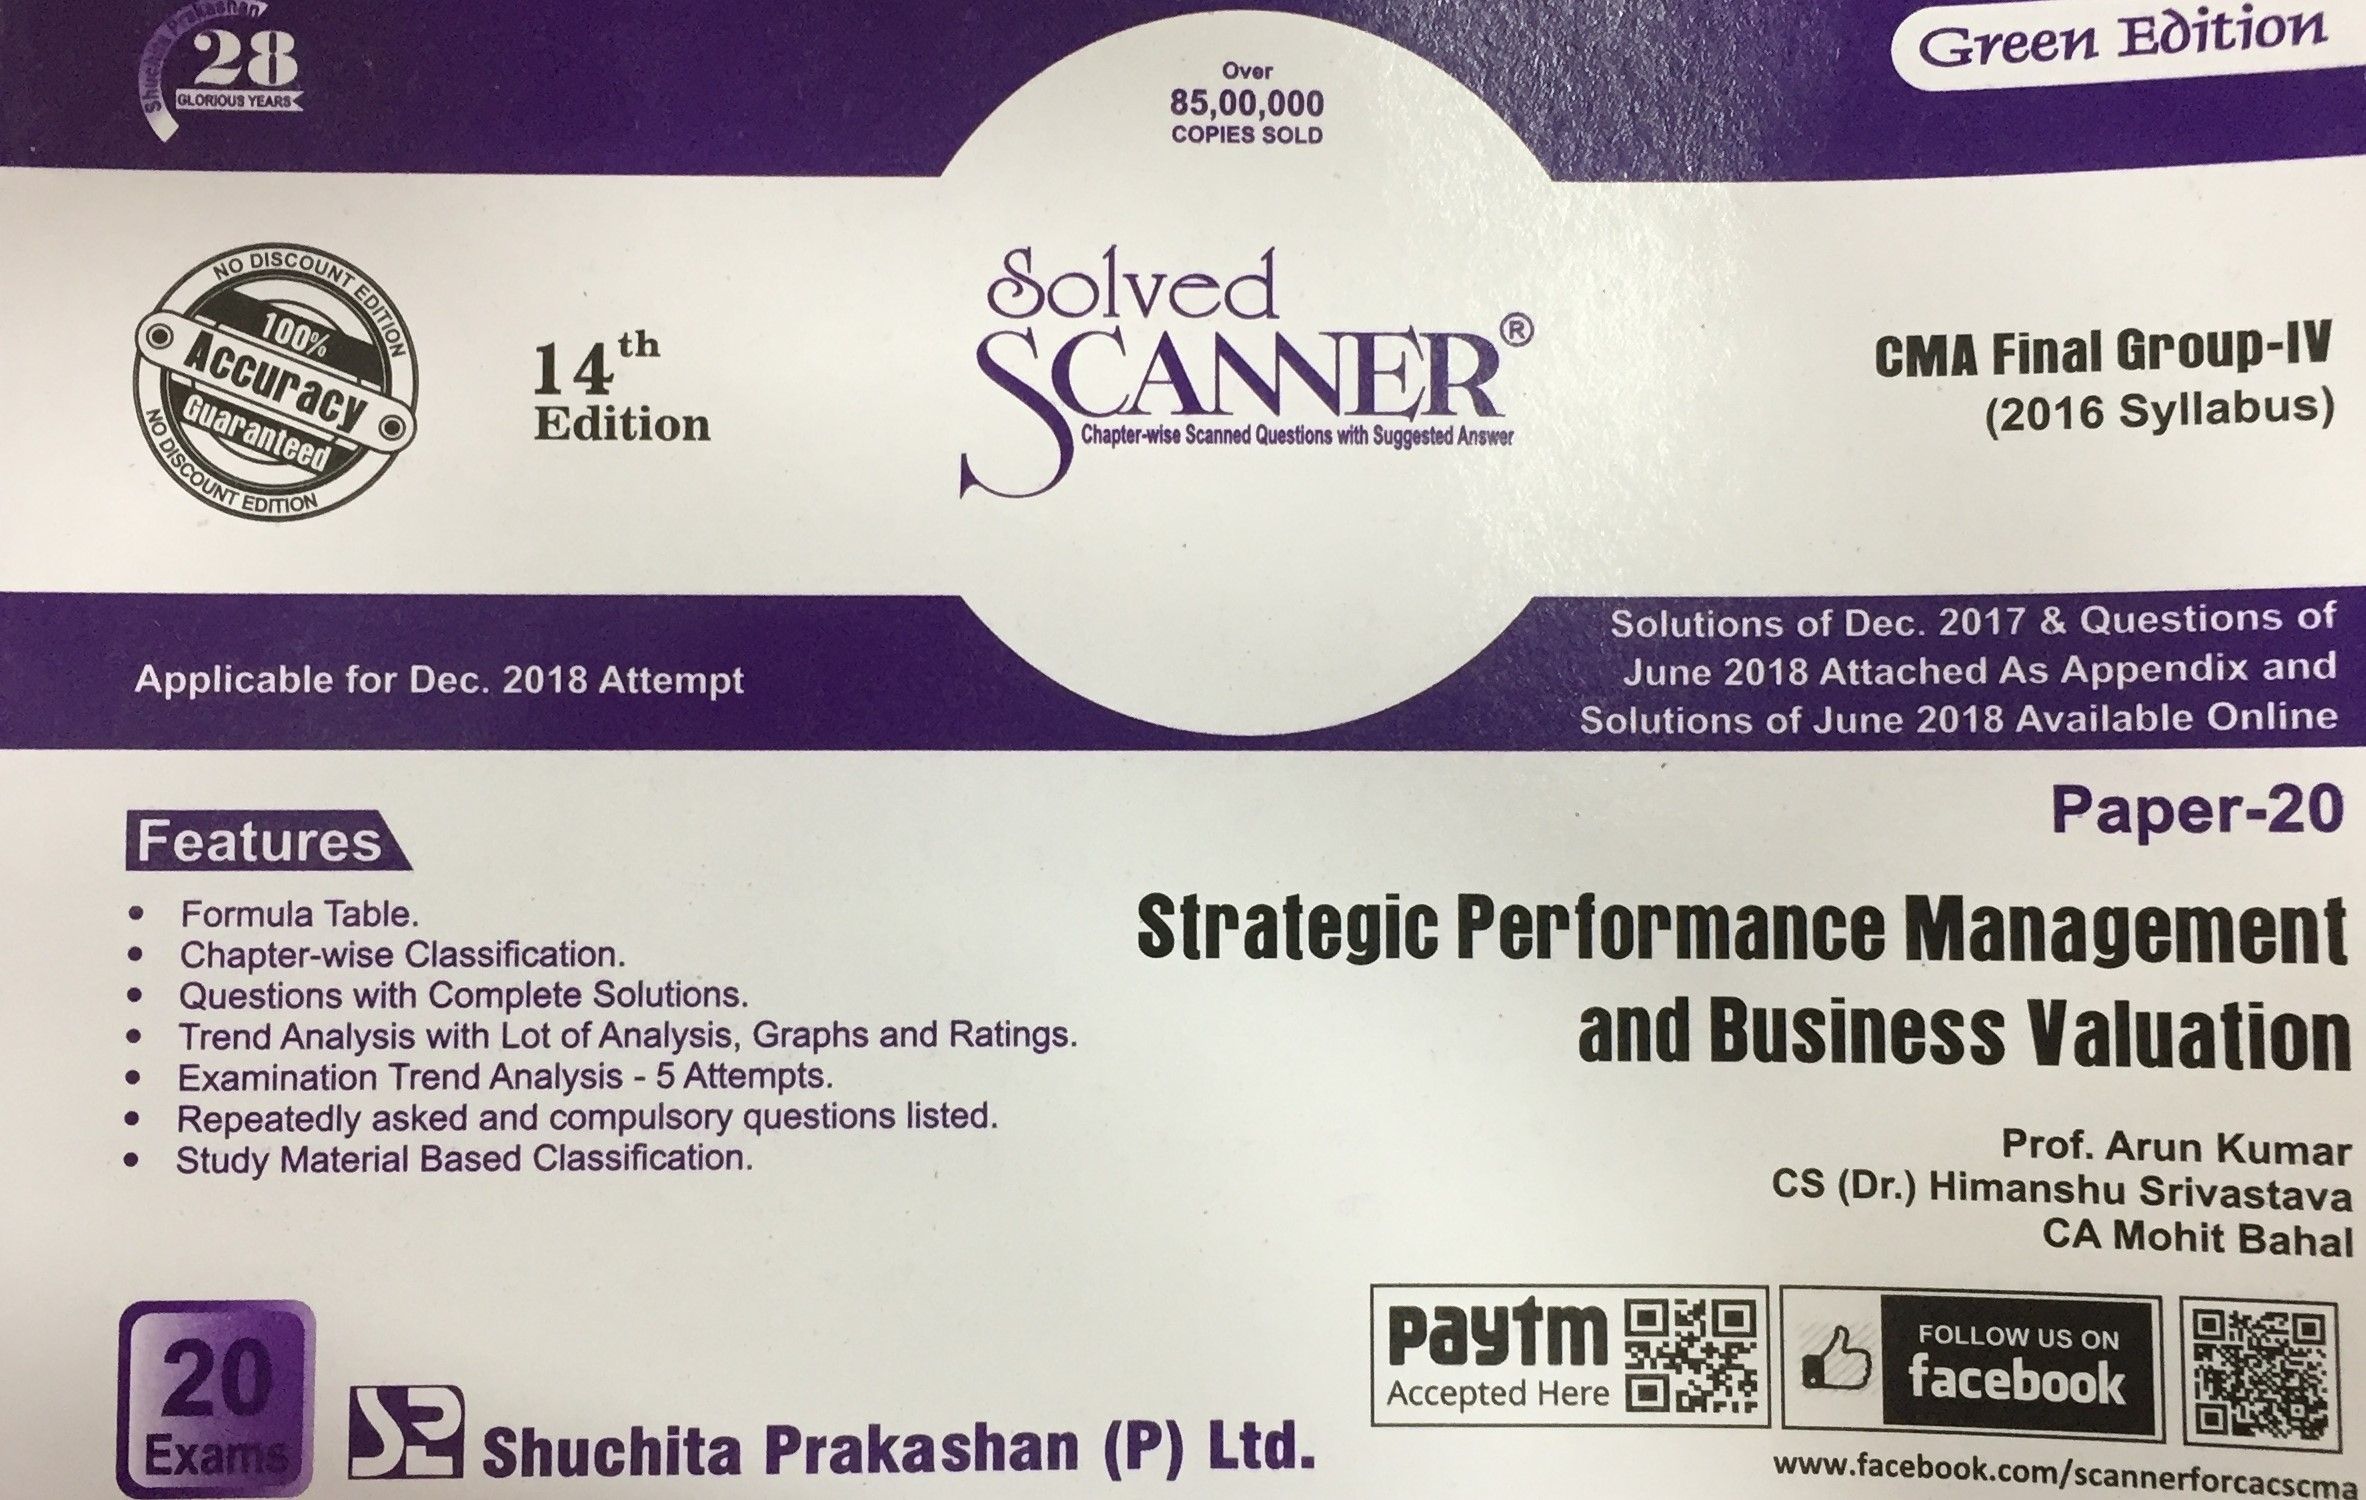 Shuchita Solved Scanner Strategic Performance Management and Business Valuation for CMA Final Group IV Paper 20 New Syllabus for Dec 2018 Exam by Prof. Arun Kumar and CA Mohit Bahal (Shuchita Prakashan) Edition 2018